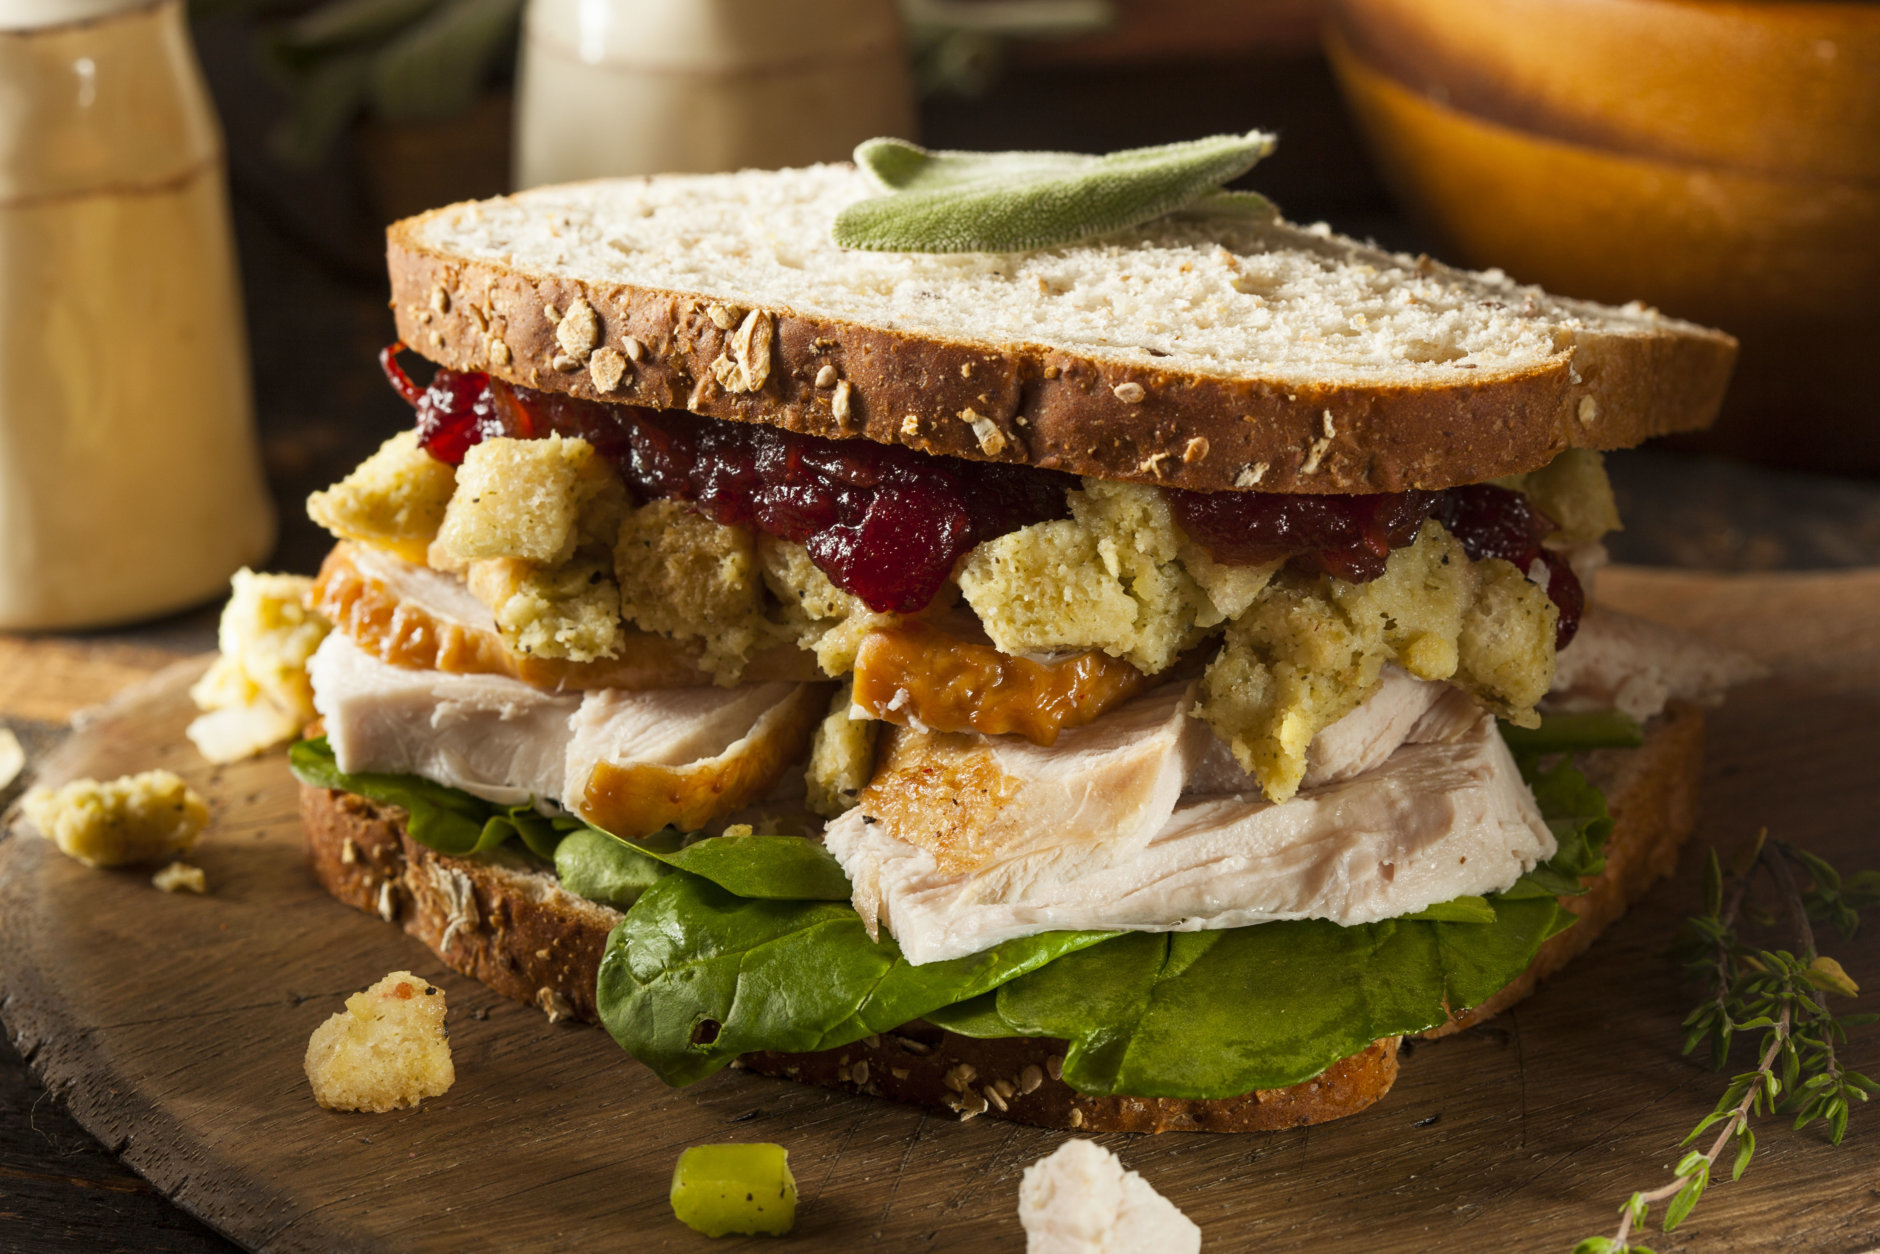 Homemade Leftover Thanksgiving Dinner Turkey Sandwich with Cranberries and Stuffing